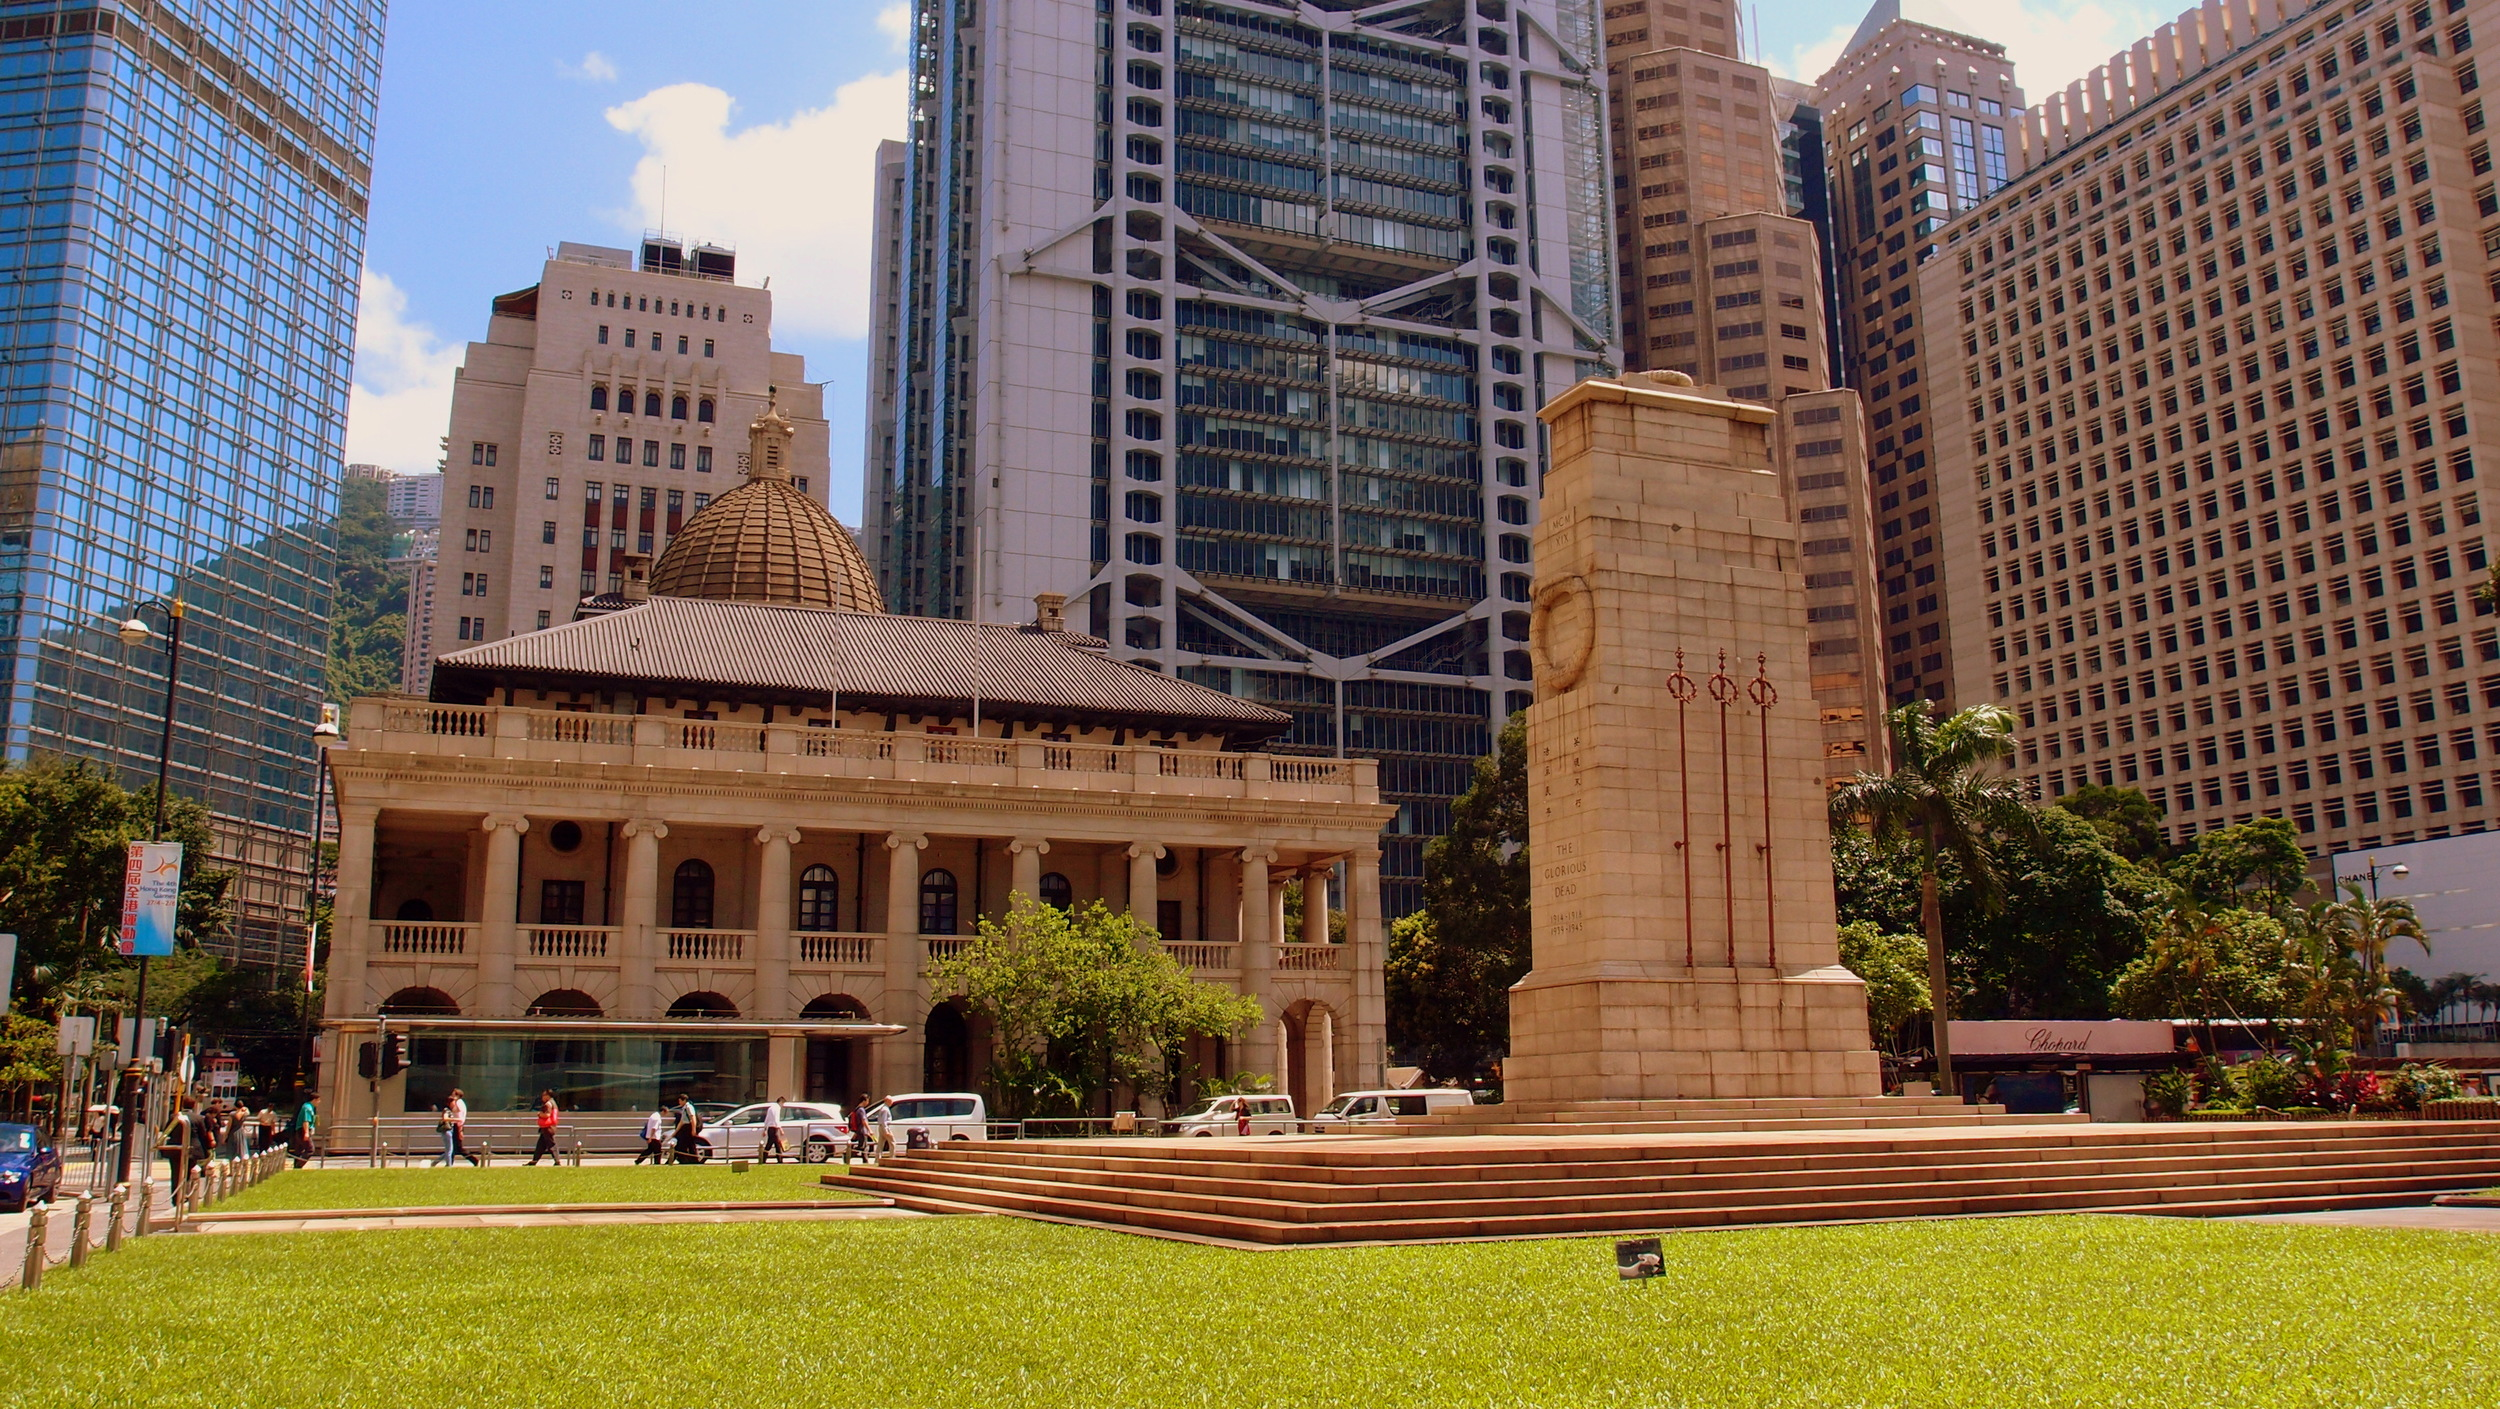 One of my favourite colonial images, Statue Square Hong Kong with the Cenotaph in the foreground and the old Legco / Supreme Court building in the background